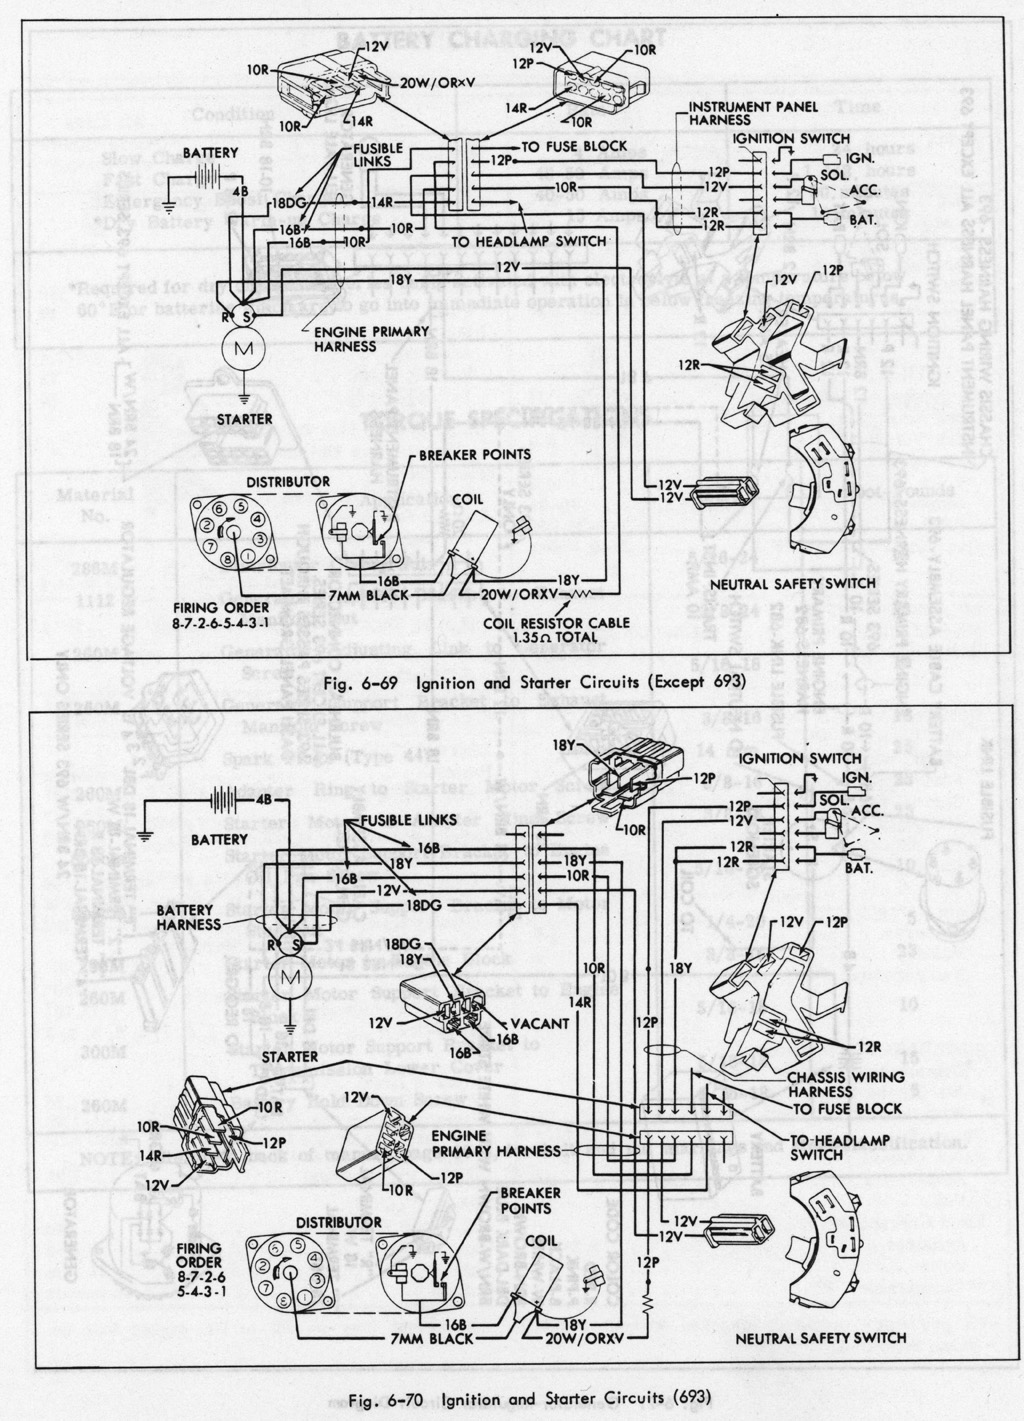 Hurst Line Lock Wiring Diagram